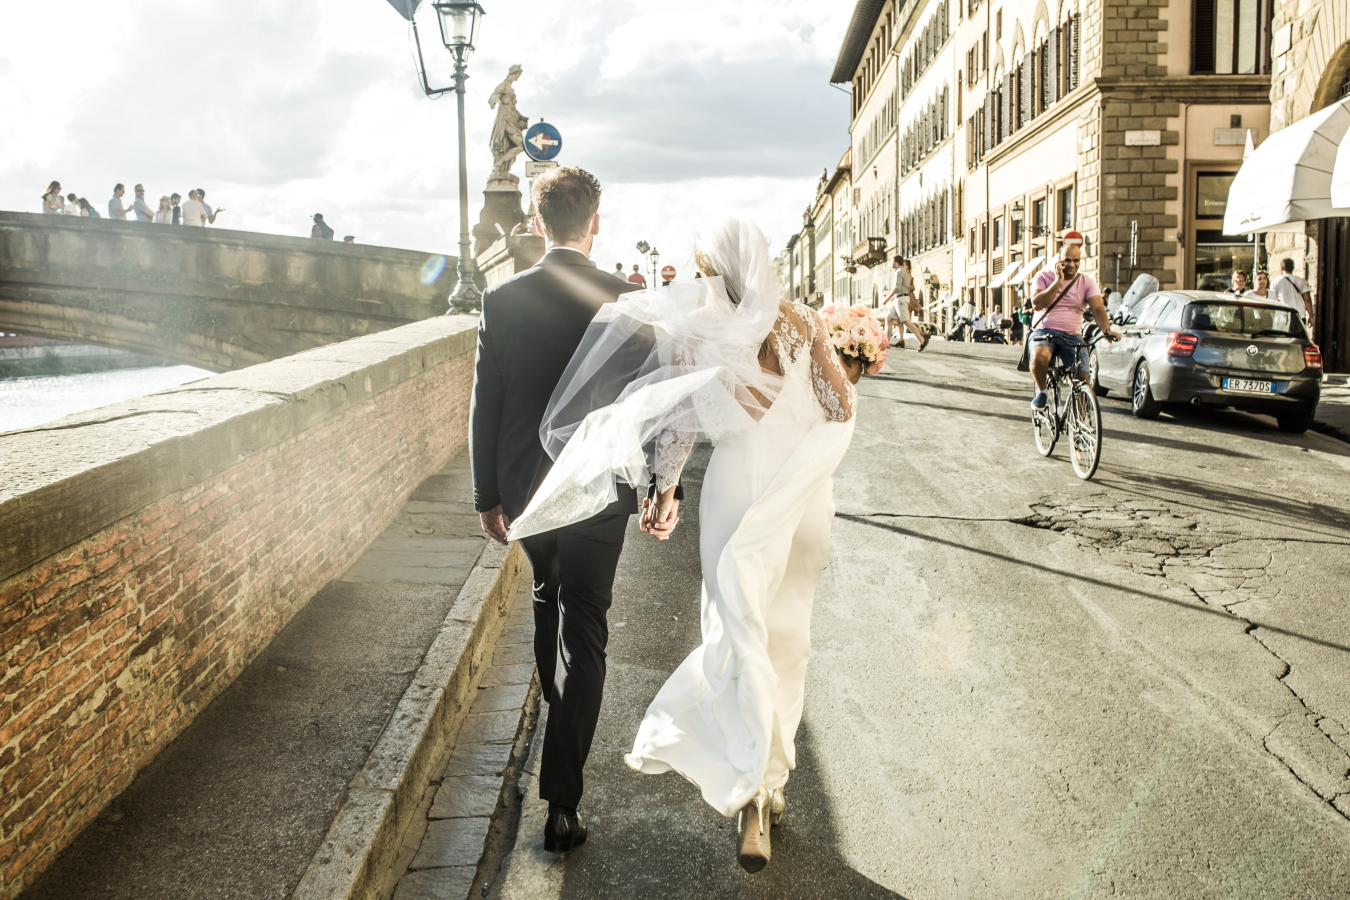 Enjoy Italy during your stay for the wedding or honeymoon. Tour